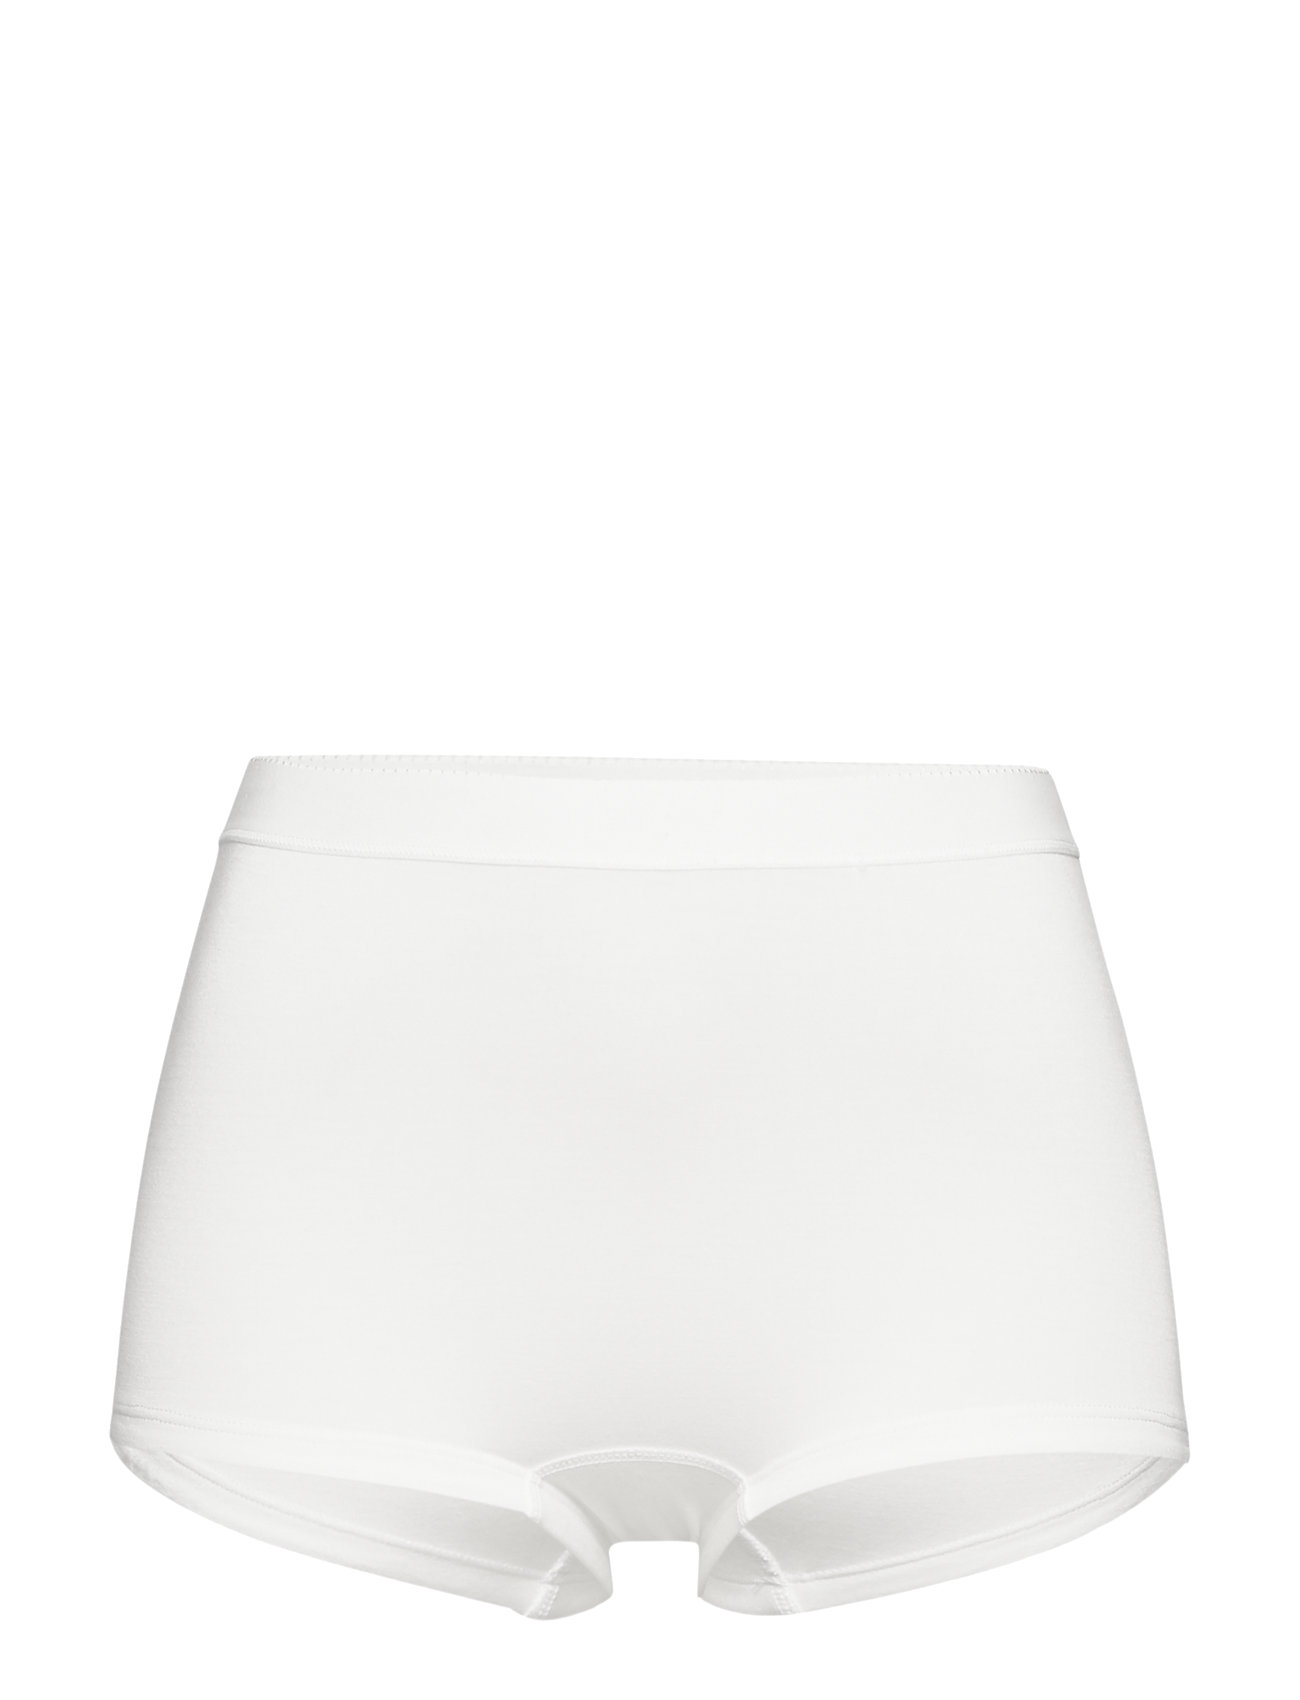 Lady Avenue Short Bamboo Panty - OFF-WHITE